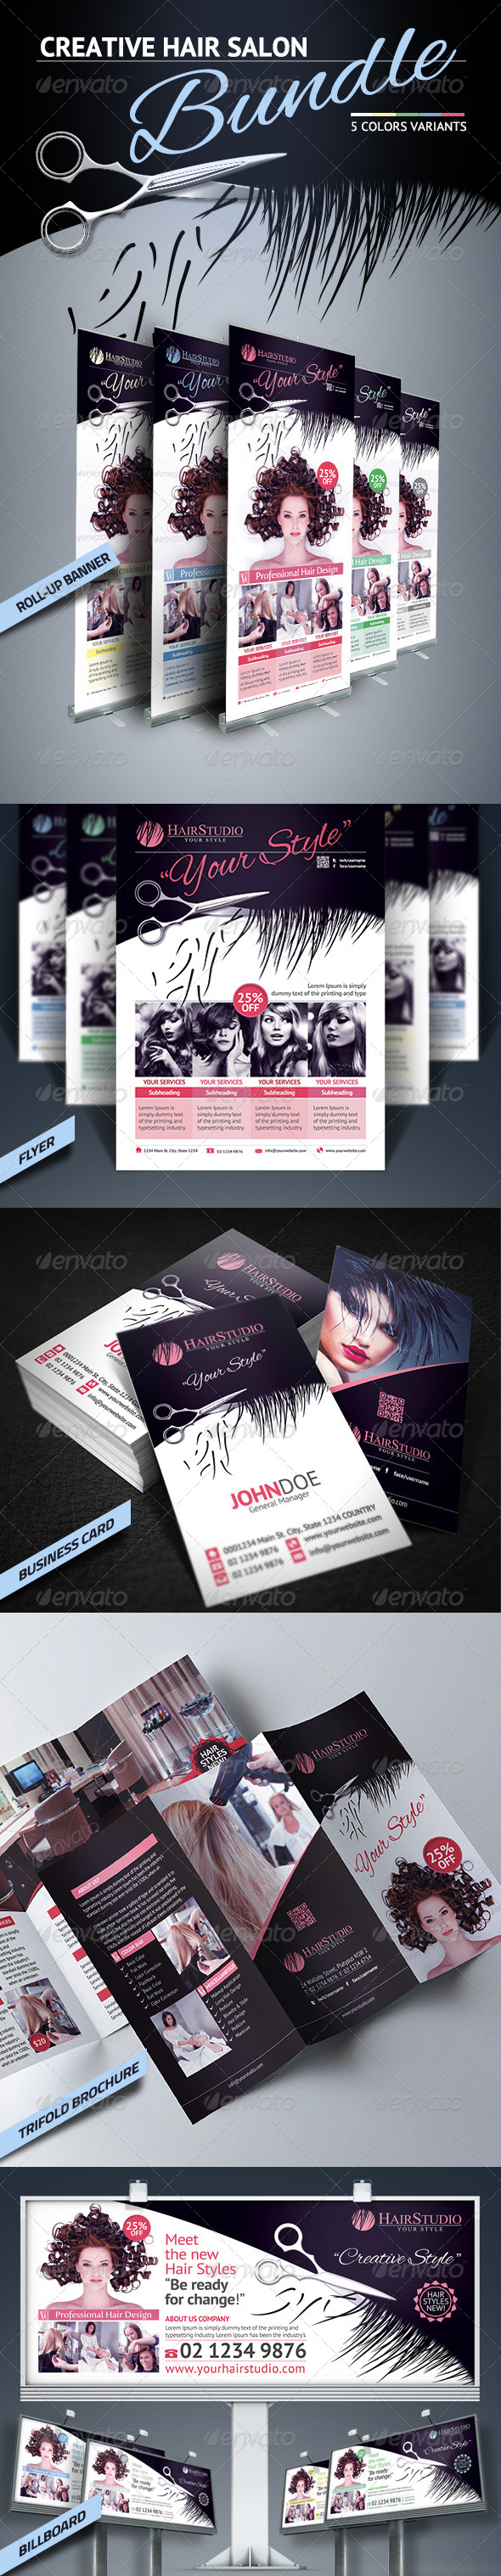 Hair Salon Bundle - Stationery Print Templates